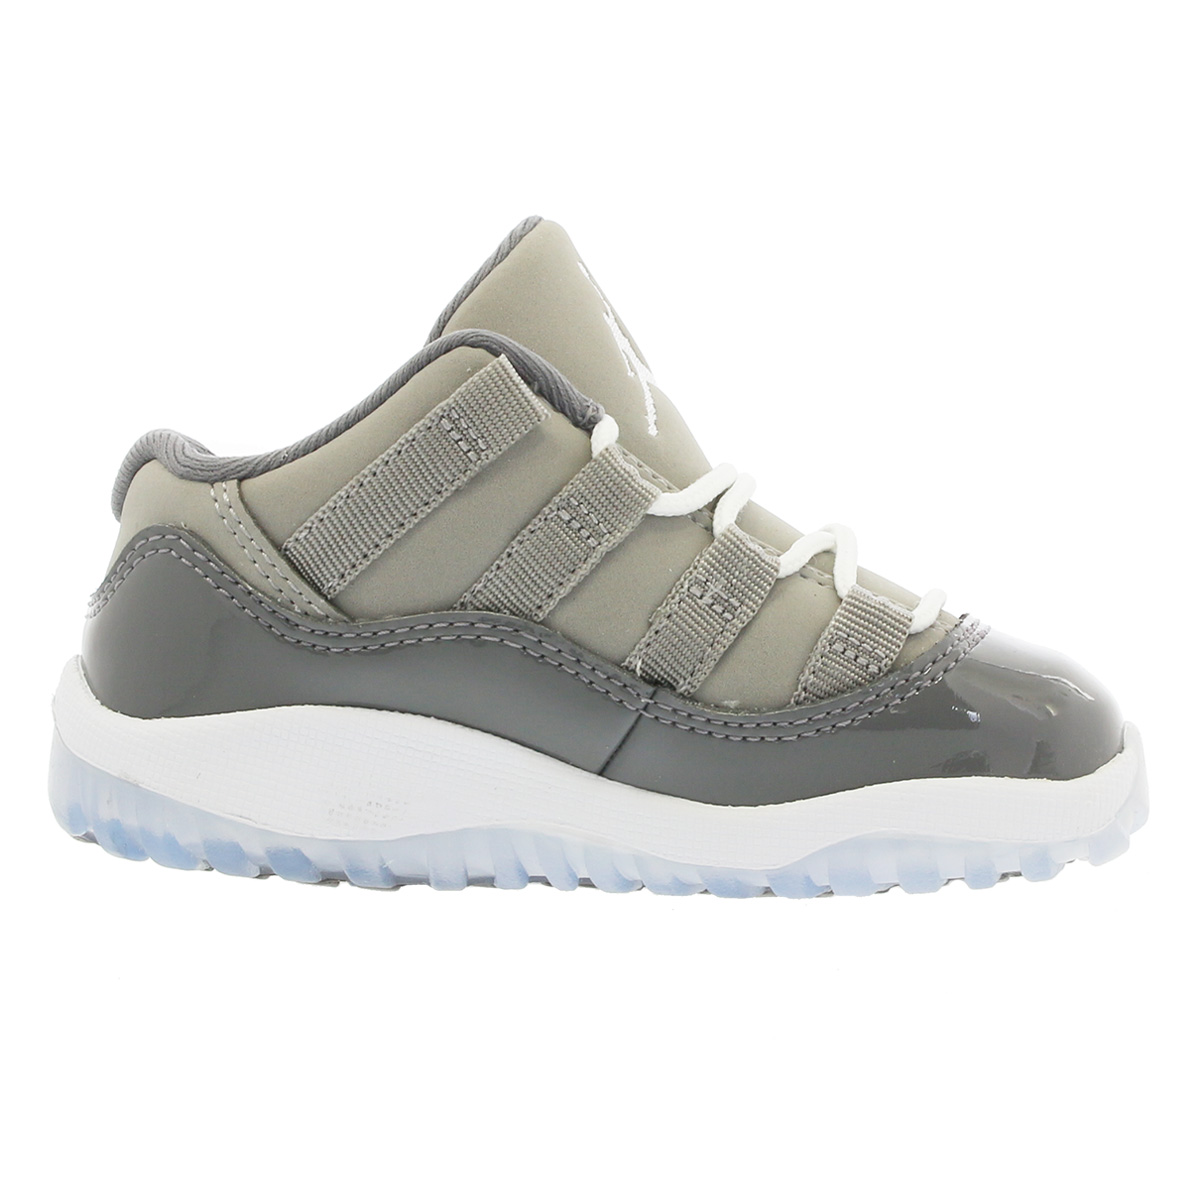 63e672bc244d NIKE AIR JORDAN 11 RETRO LOW BT Nike Air Jordan 11 nostalgic low BT MEDIUM  GREY GUMSMOKE WHITE 505